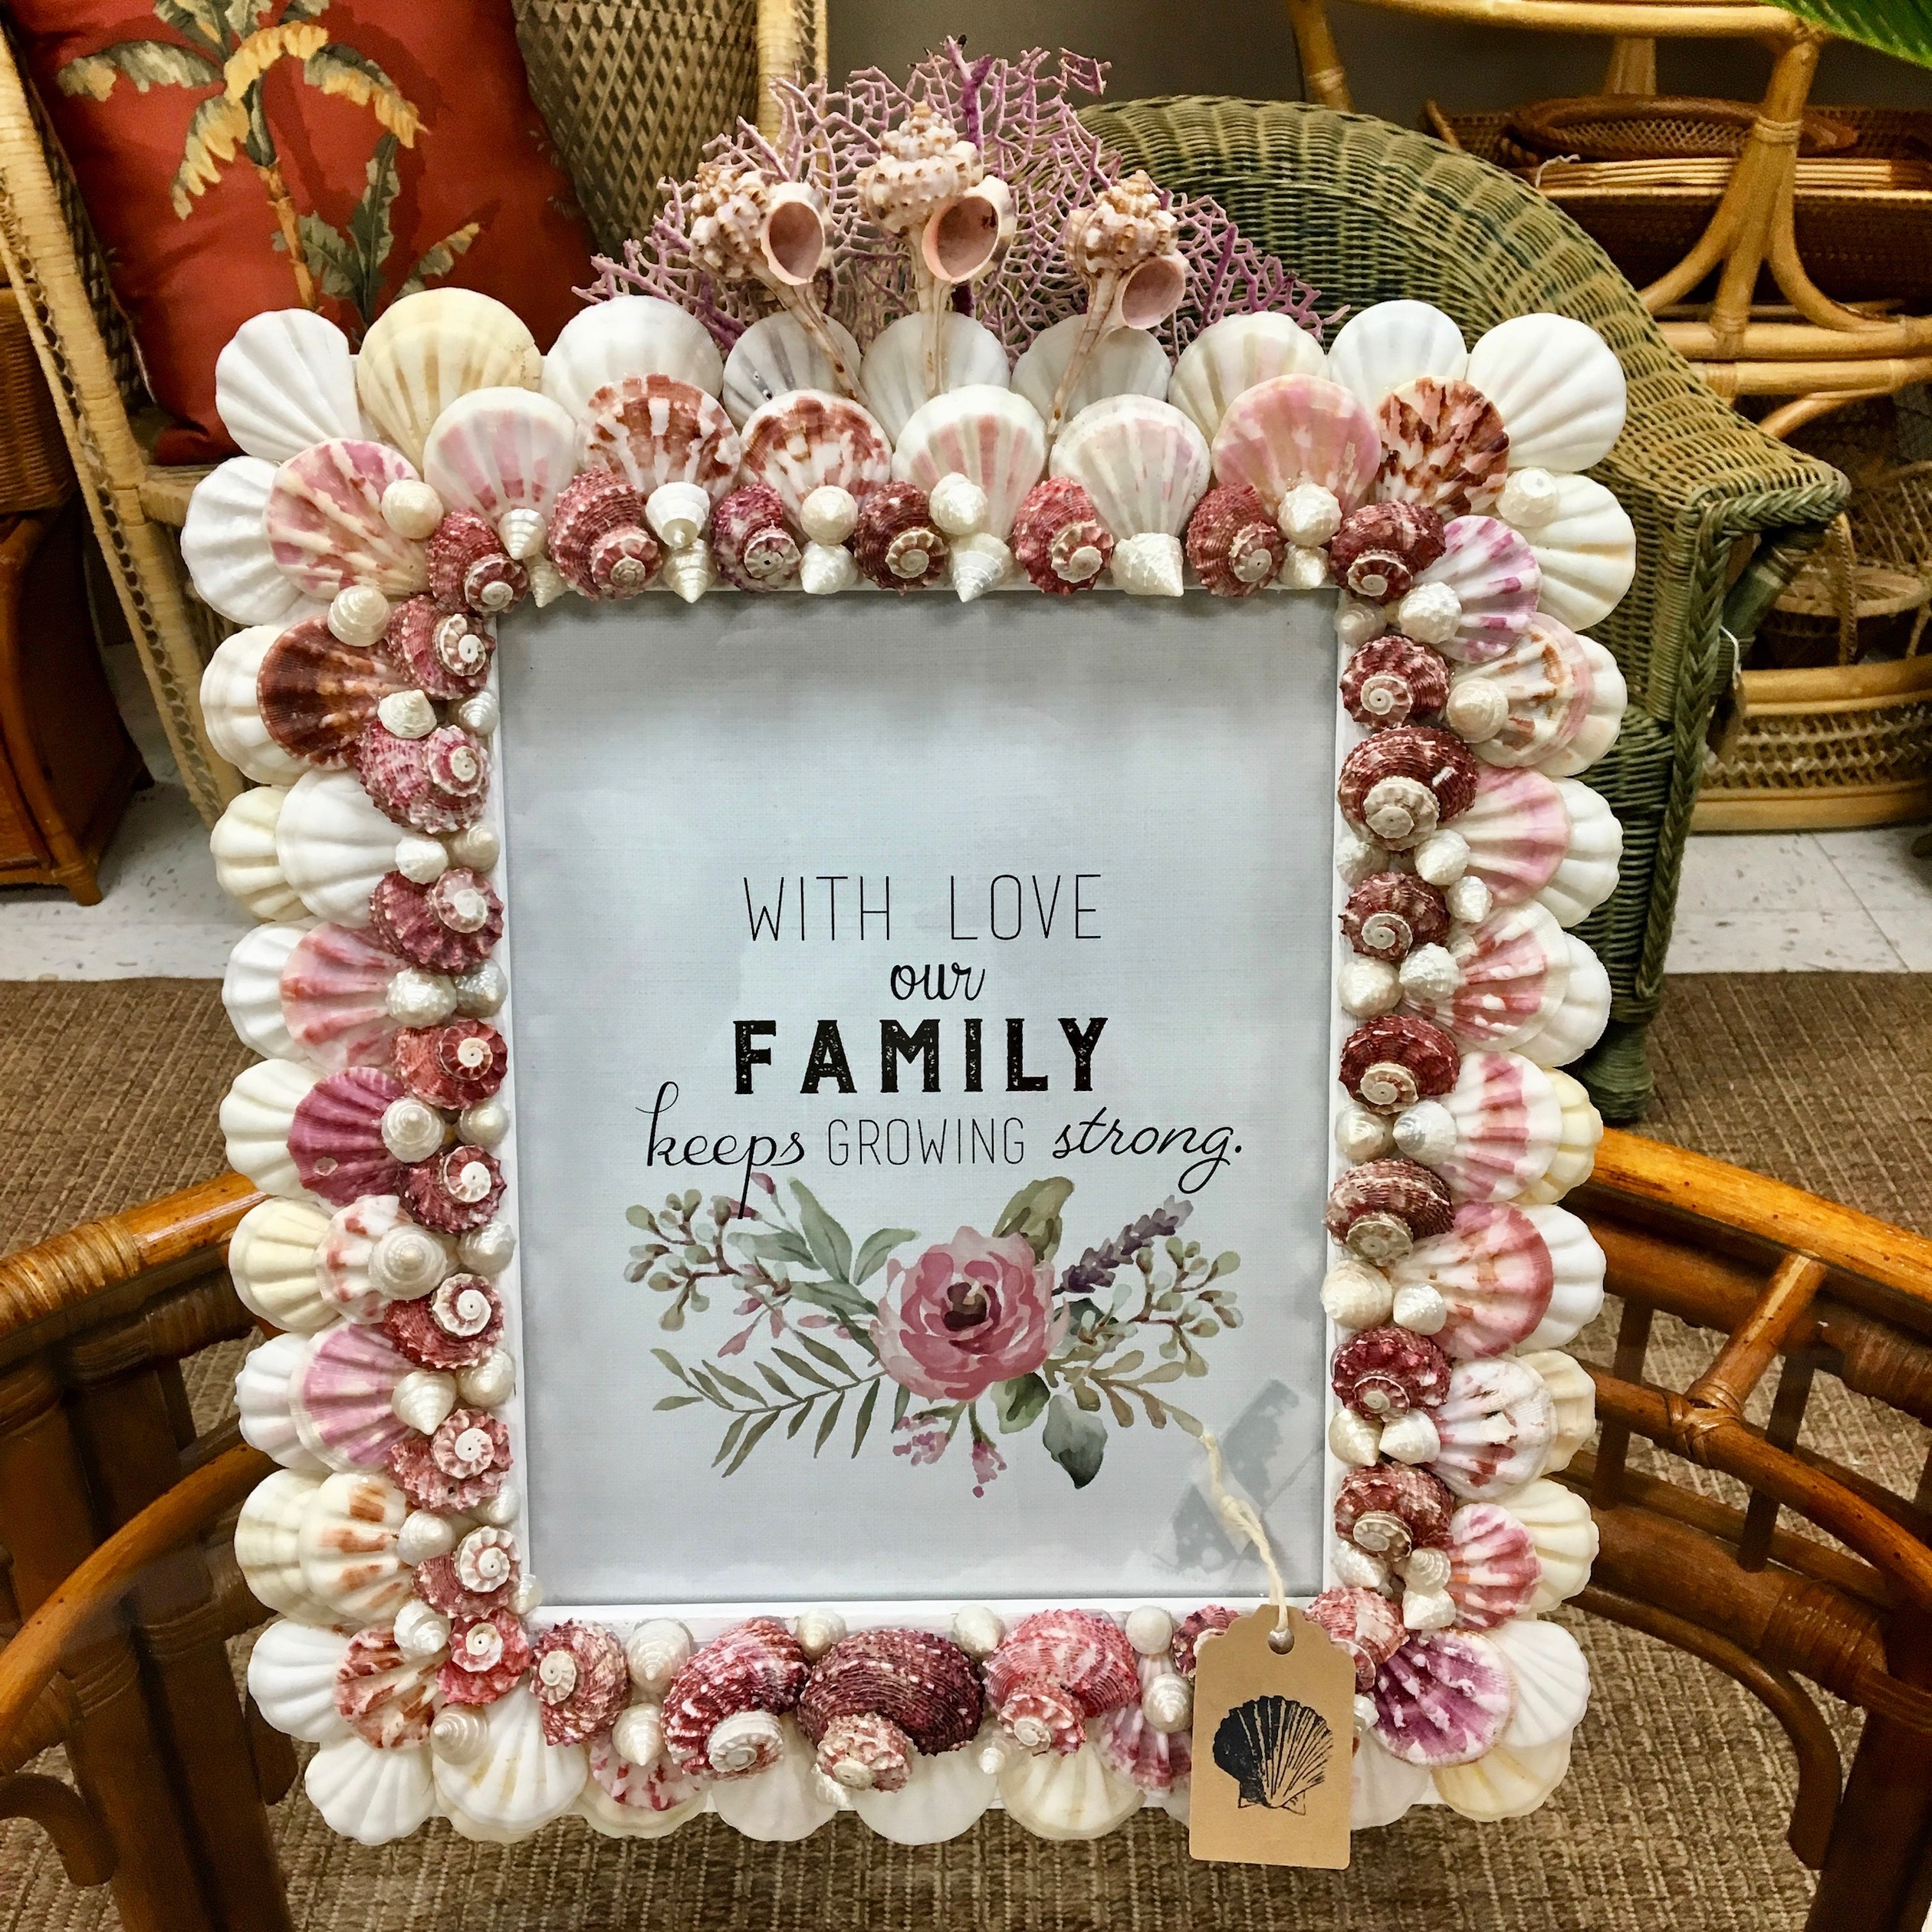 Shell picture frame made with pink and white shells. Inside the frame reds family and has flowers.